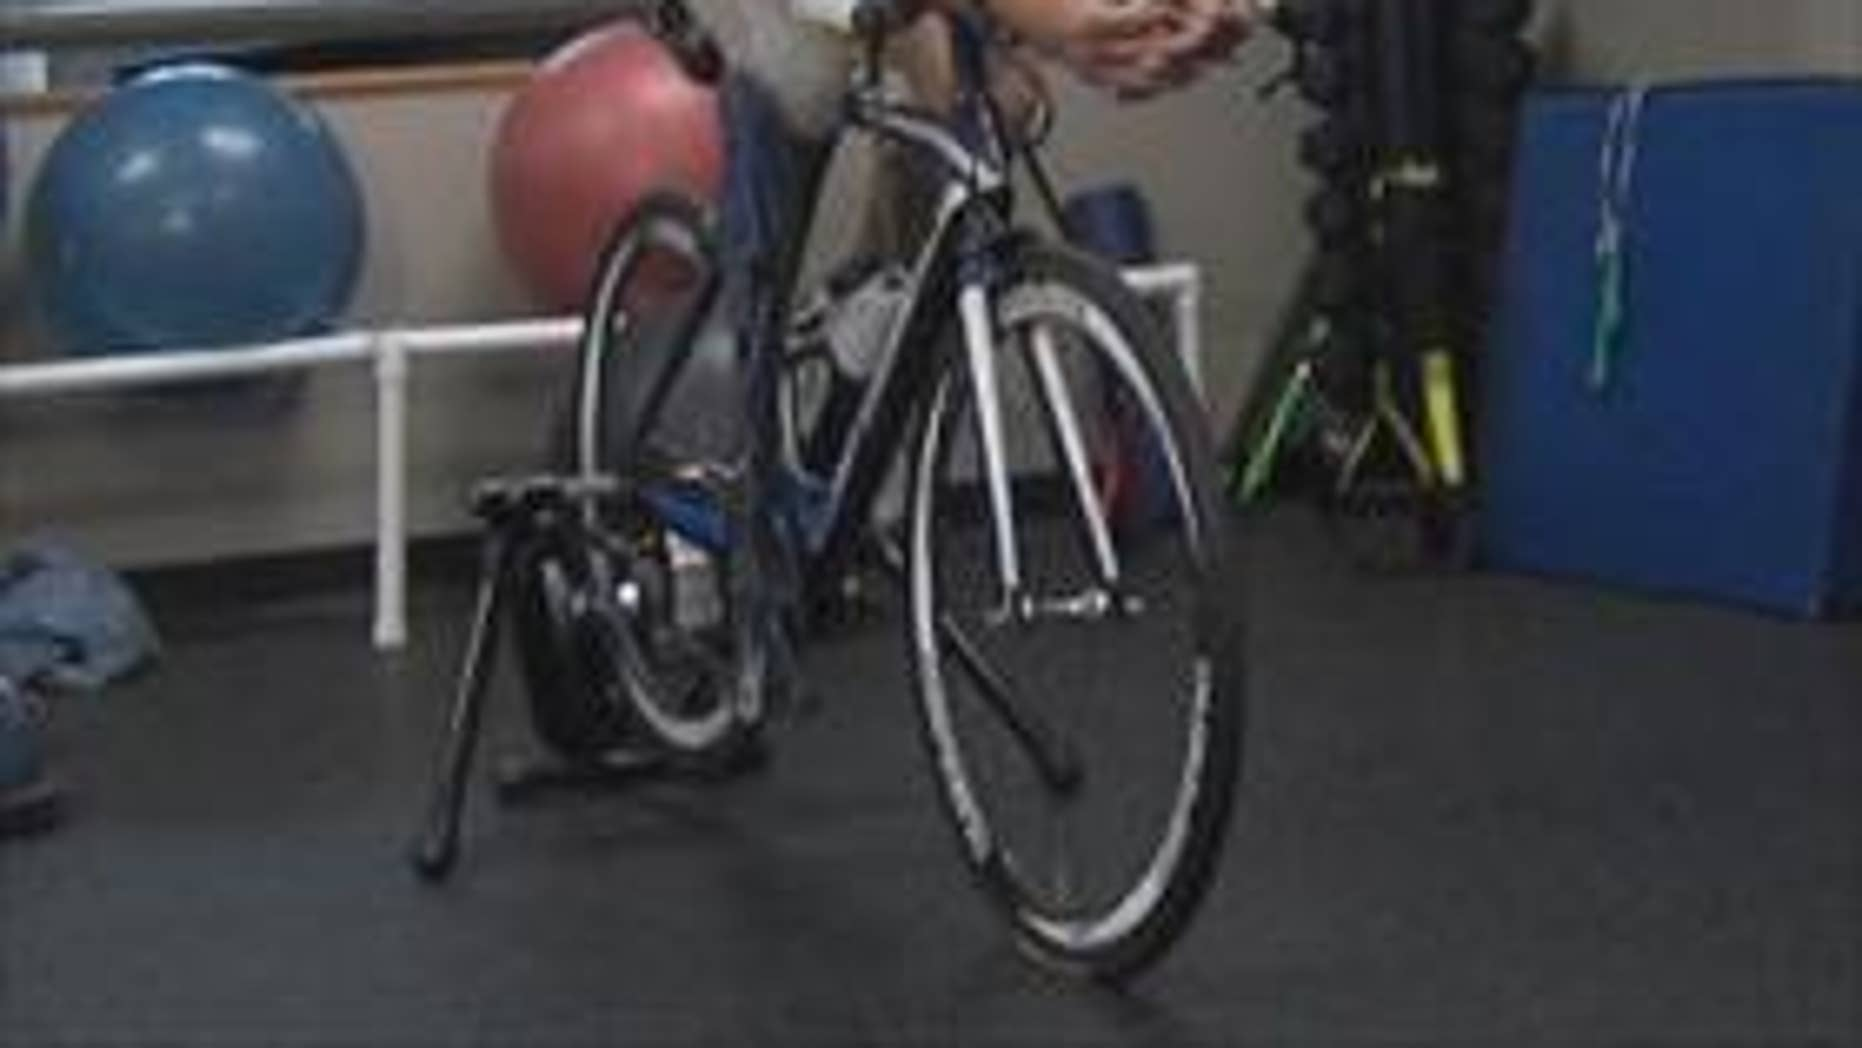 Amputee, Jeff Glasbrenner trains for his 8th Ironman in 8 months